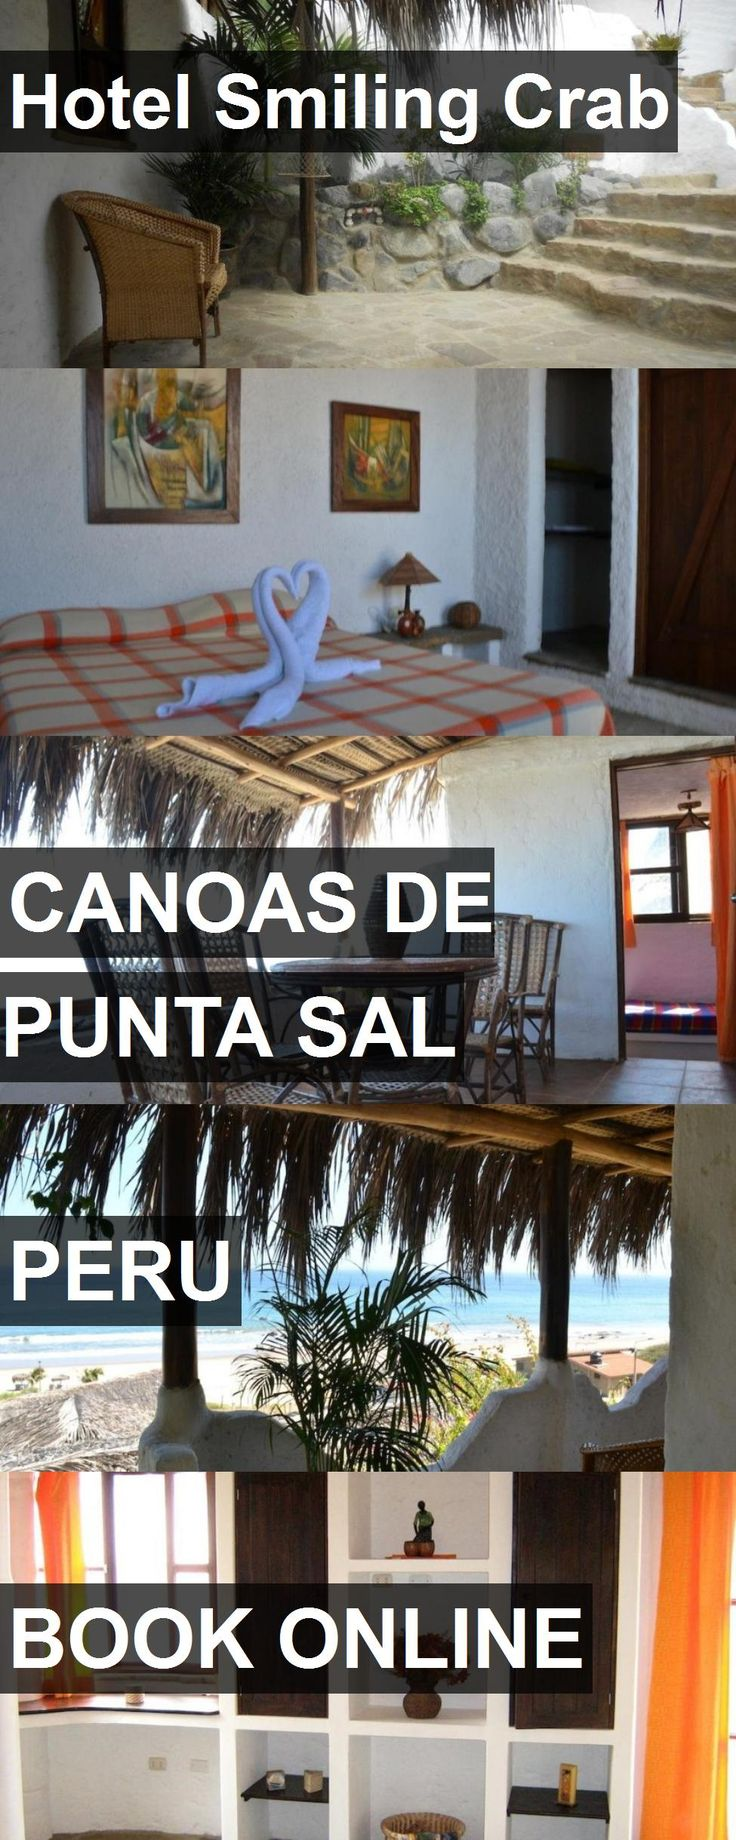 Hotel Hotel Smiling Crab in Canoas De Punta Sal, Peru. For more information, photos, reviews and best prices please follow the link. #Peru #CanoasDePuntaSal #HotelSmilingCrab #hotel #travel #vacation